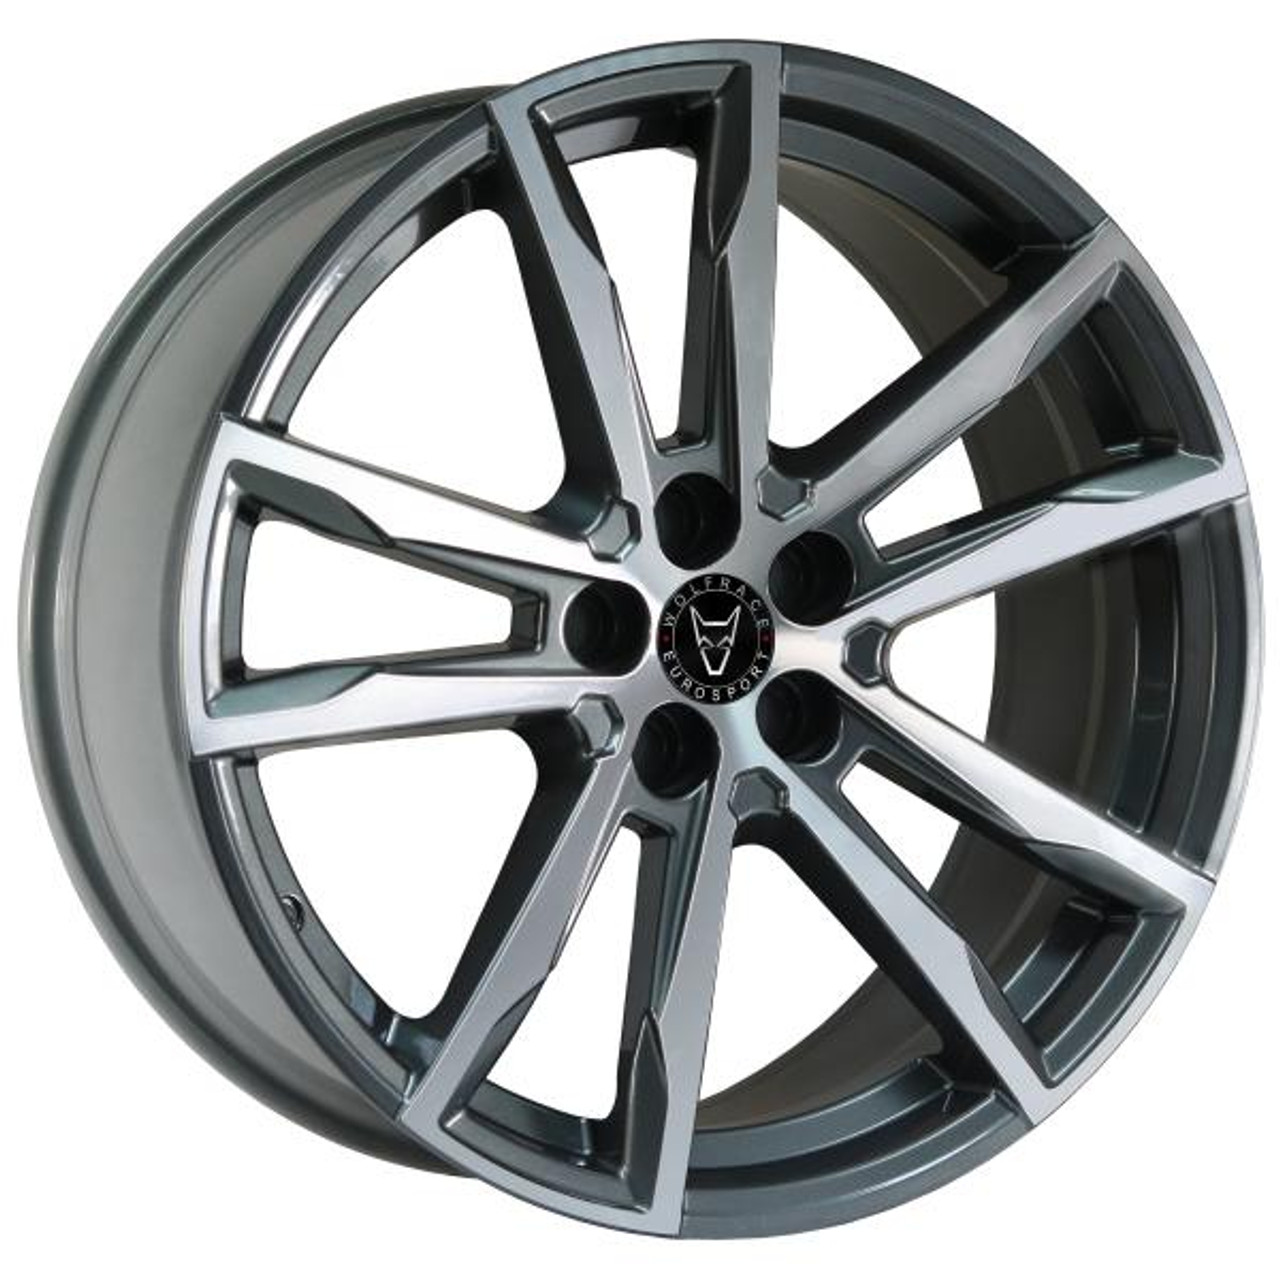 Wolfrace Eurosport Dortmund Alloy Wheels Gunmetal / Polished